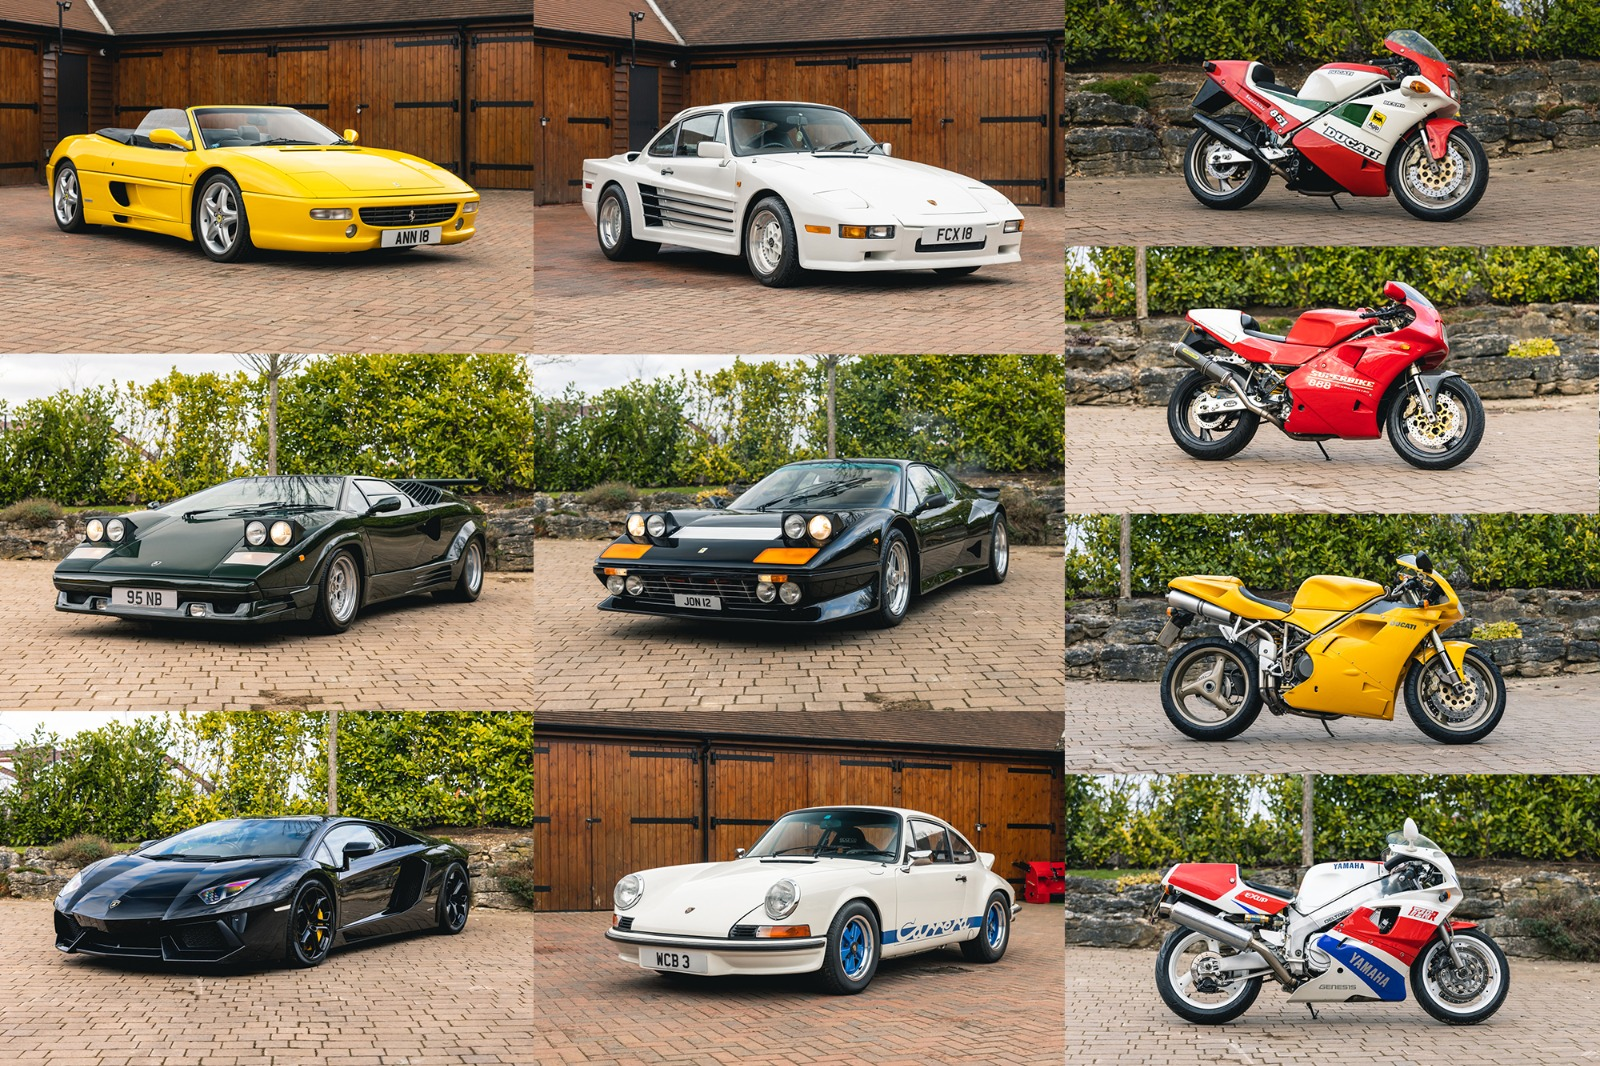 THE BRUNT COLLECTION: LIVE ON COLLECTING CARS